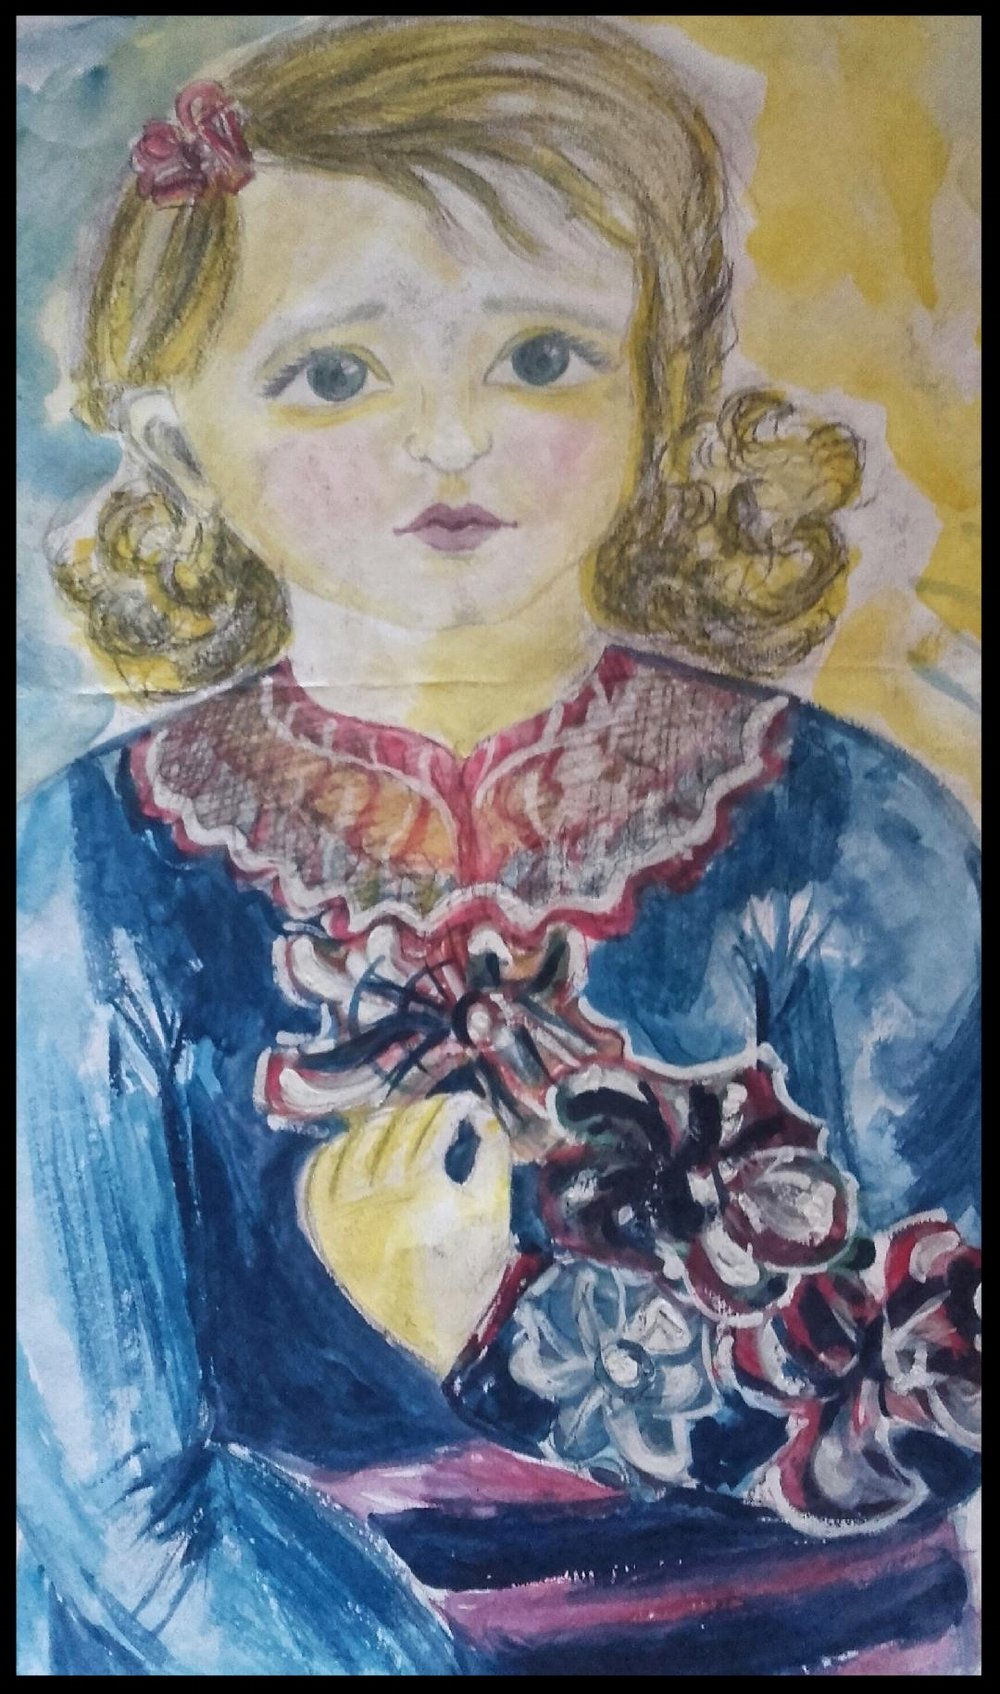 - LITTLE GIRLWATERCOLOR AND PENCIL35 CM X 20 CM